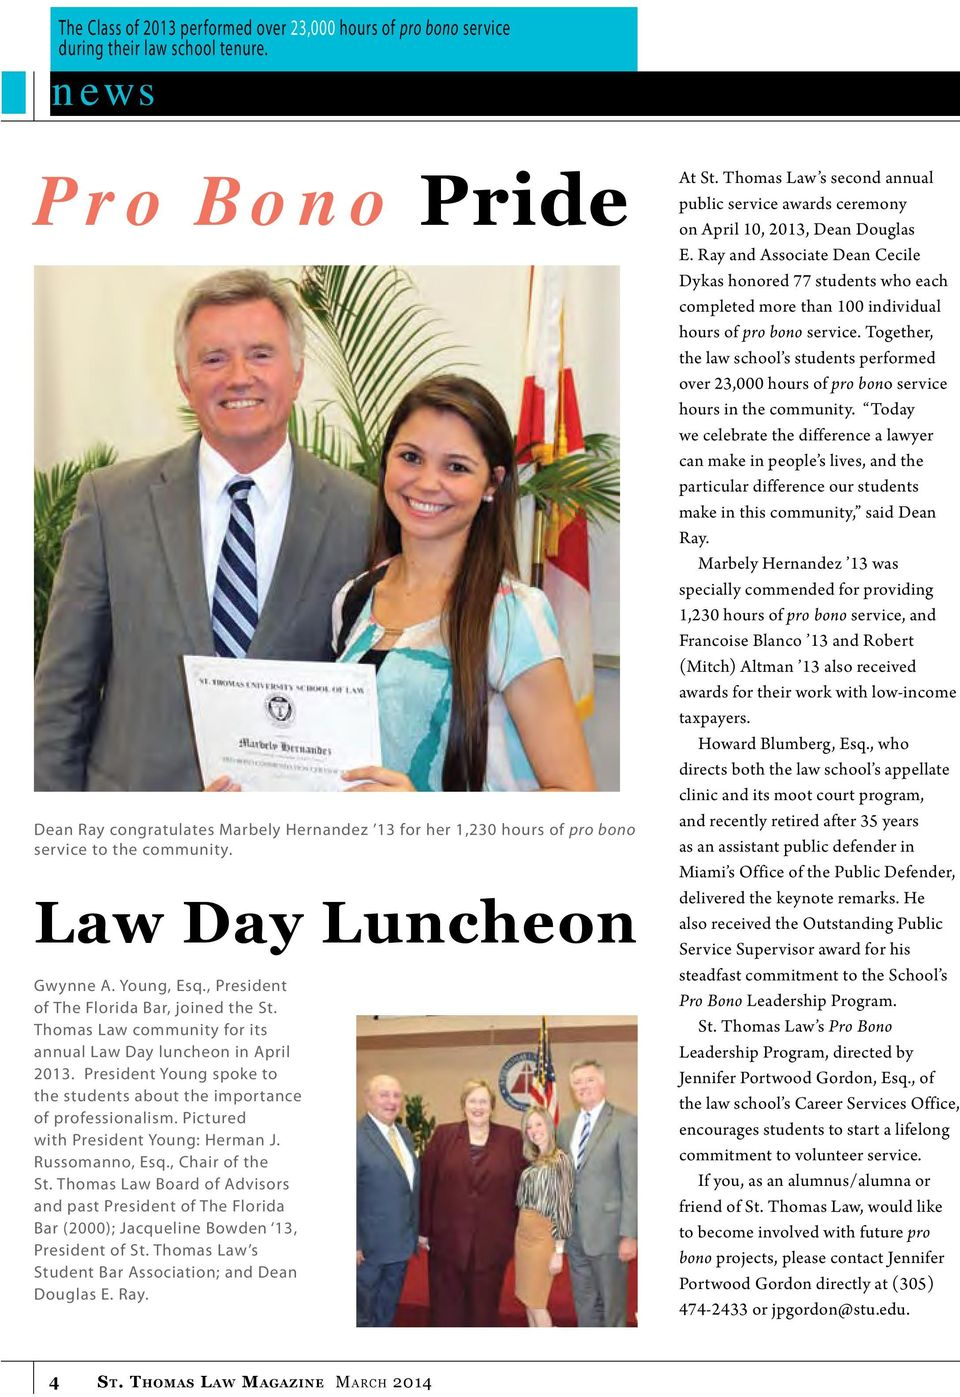 , President of The Florida Bar, joined the St. Thomas Law community for its annual Law Day luncheon in April 2013. President Young spoke to the students about the importance of professionalism.